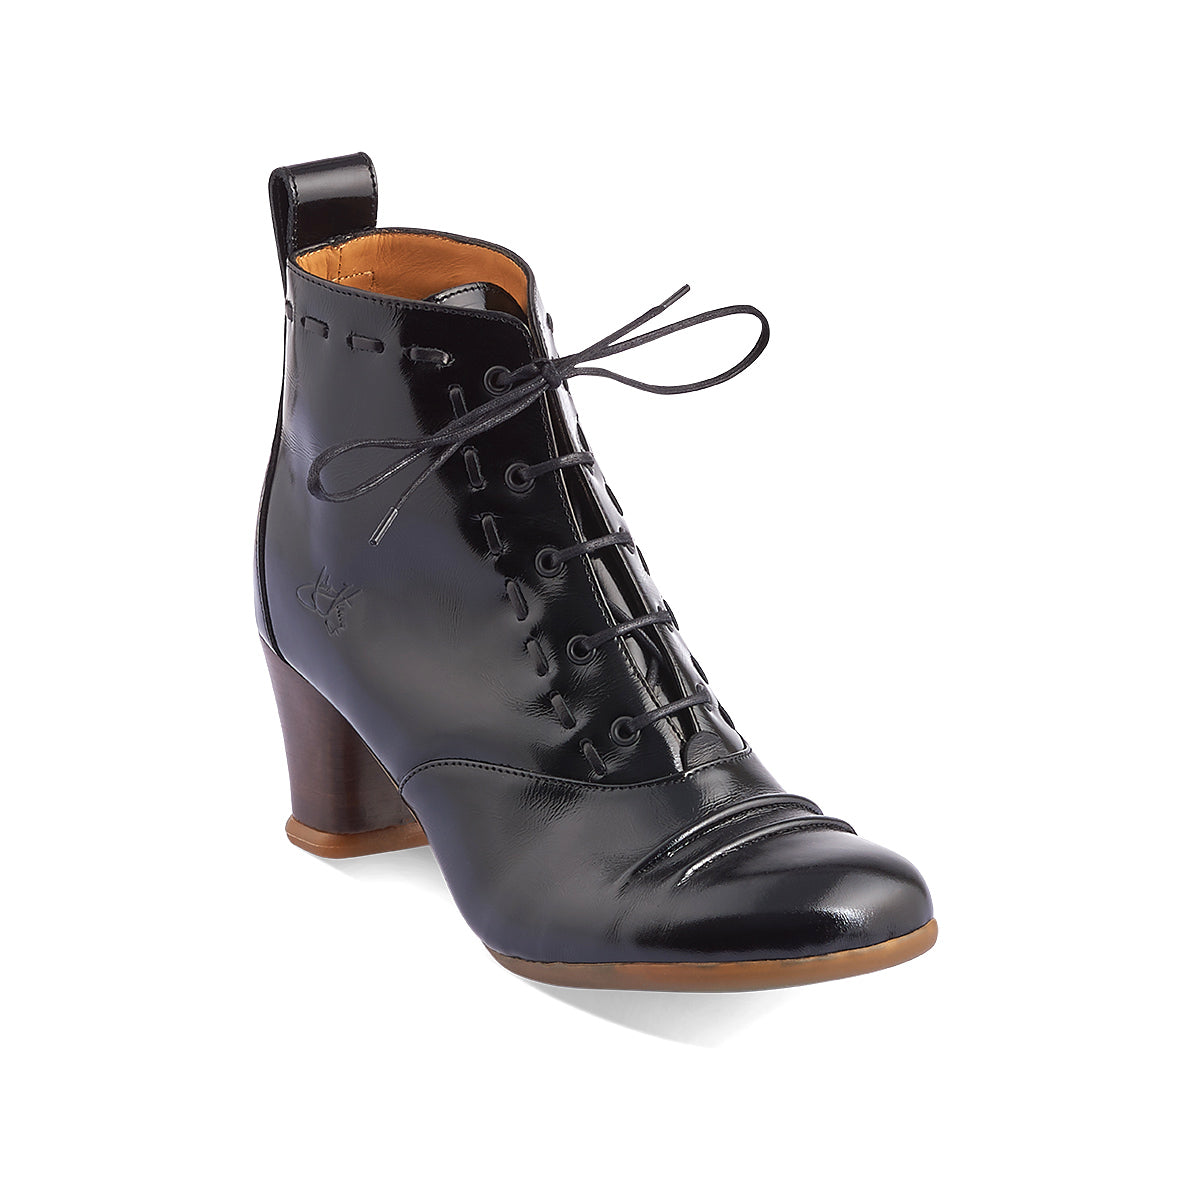 "Named after the Italian mezzo-soprano, the timeless Bartoli returns to soleDevotion in beautiful glossy black leather. This gorgeous lace-up boot secures neatly around the ankle and John Fluevog's ever-popular Operettas heel makes Bartoli supremely comfortable on any surface. ""Your Love Makes Me Sing!"""